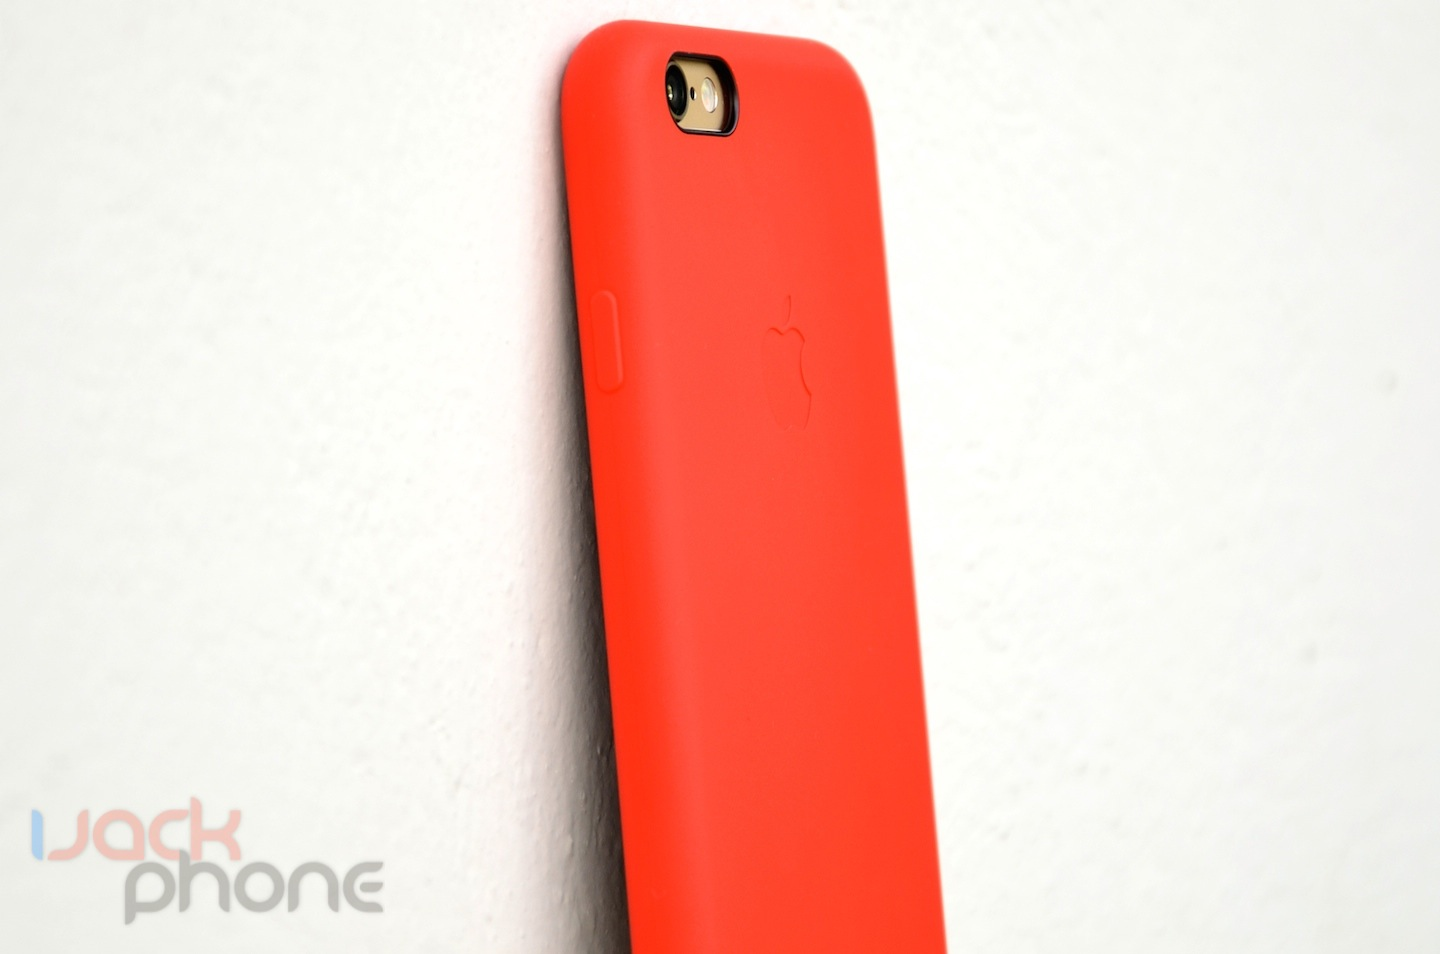 custodia in pelle per iphone 6/6s - product red